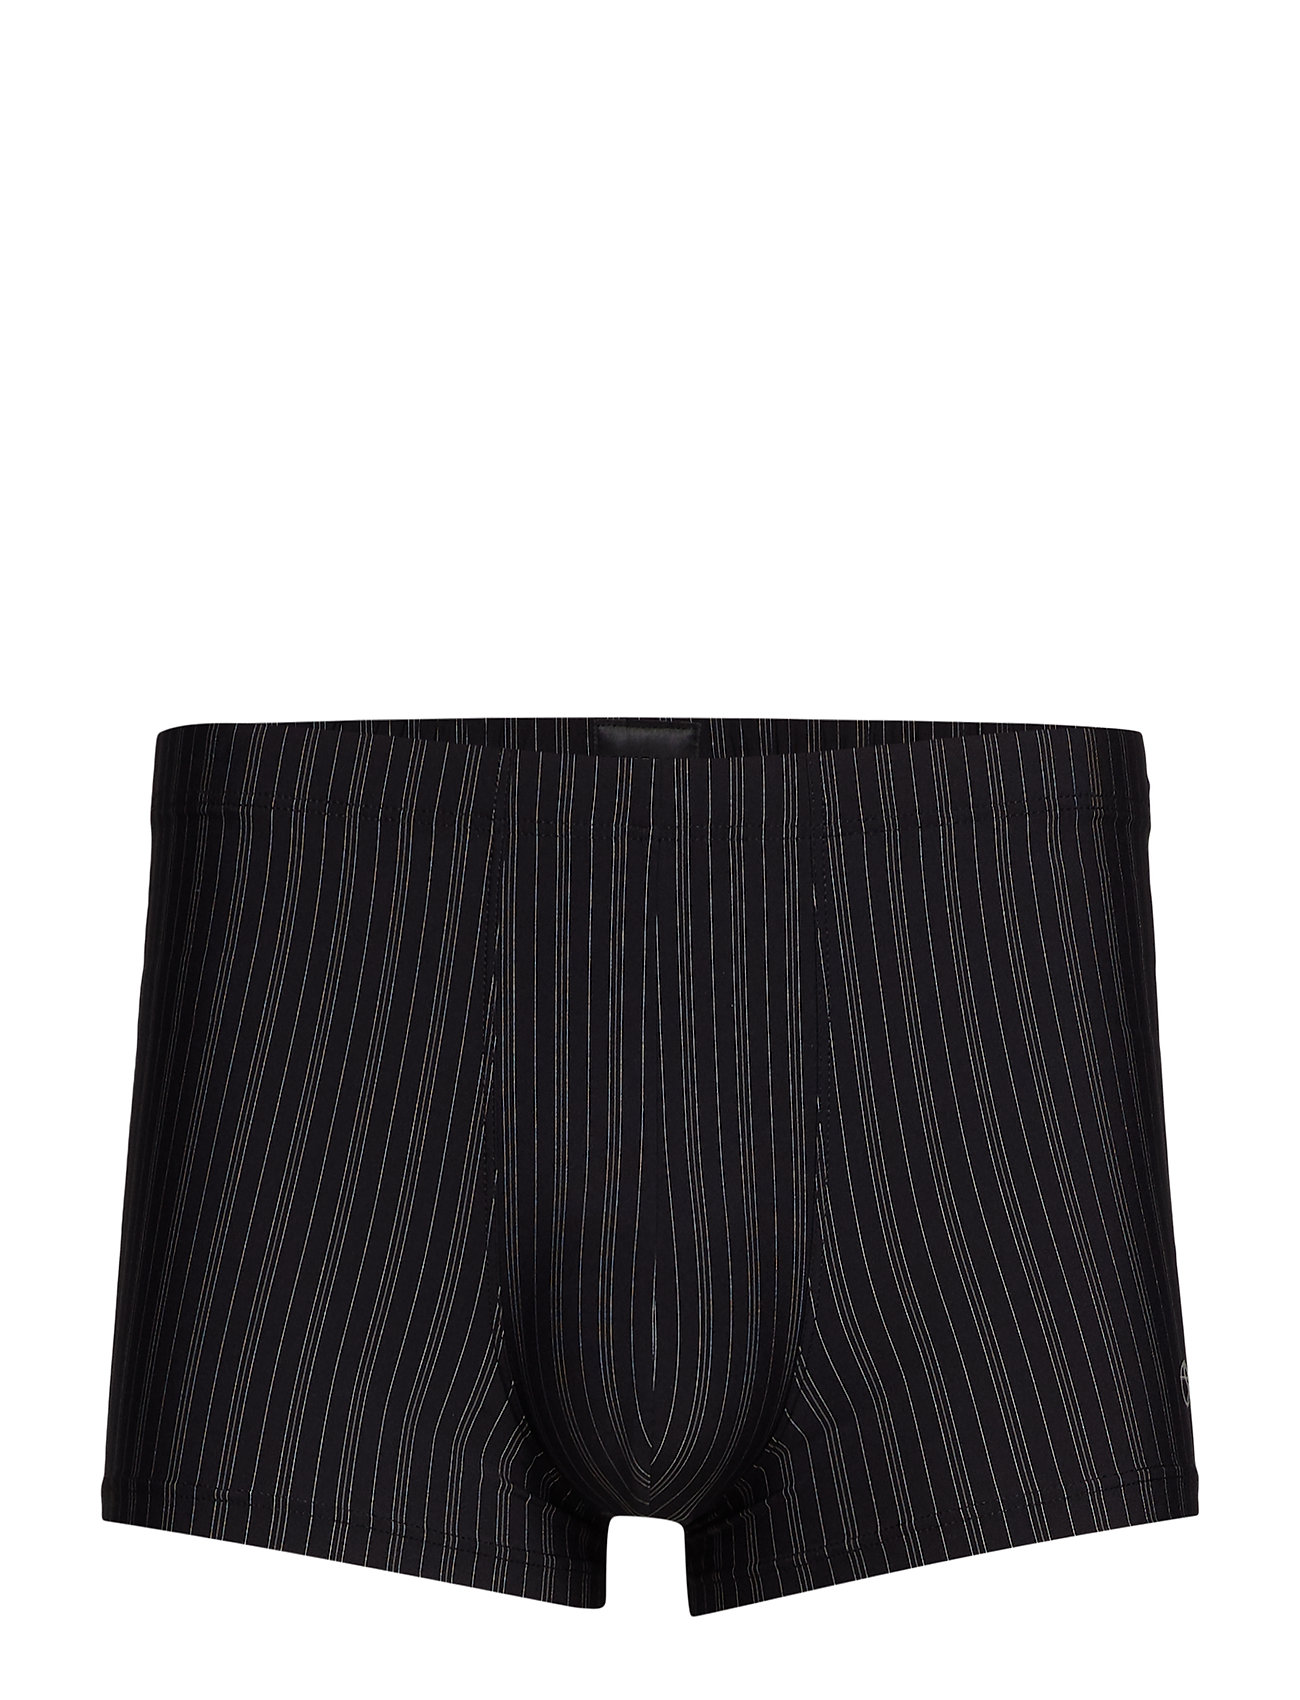 Schiesser Low Rise Shorts - BLACK